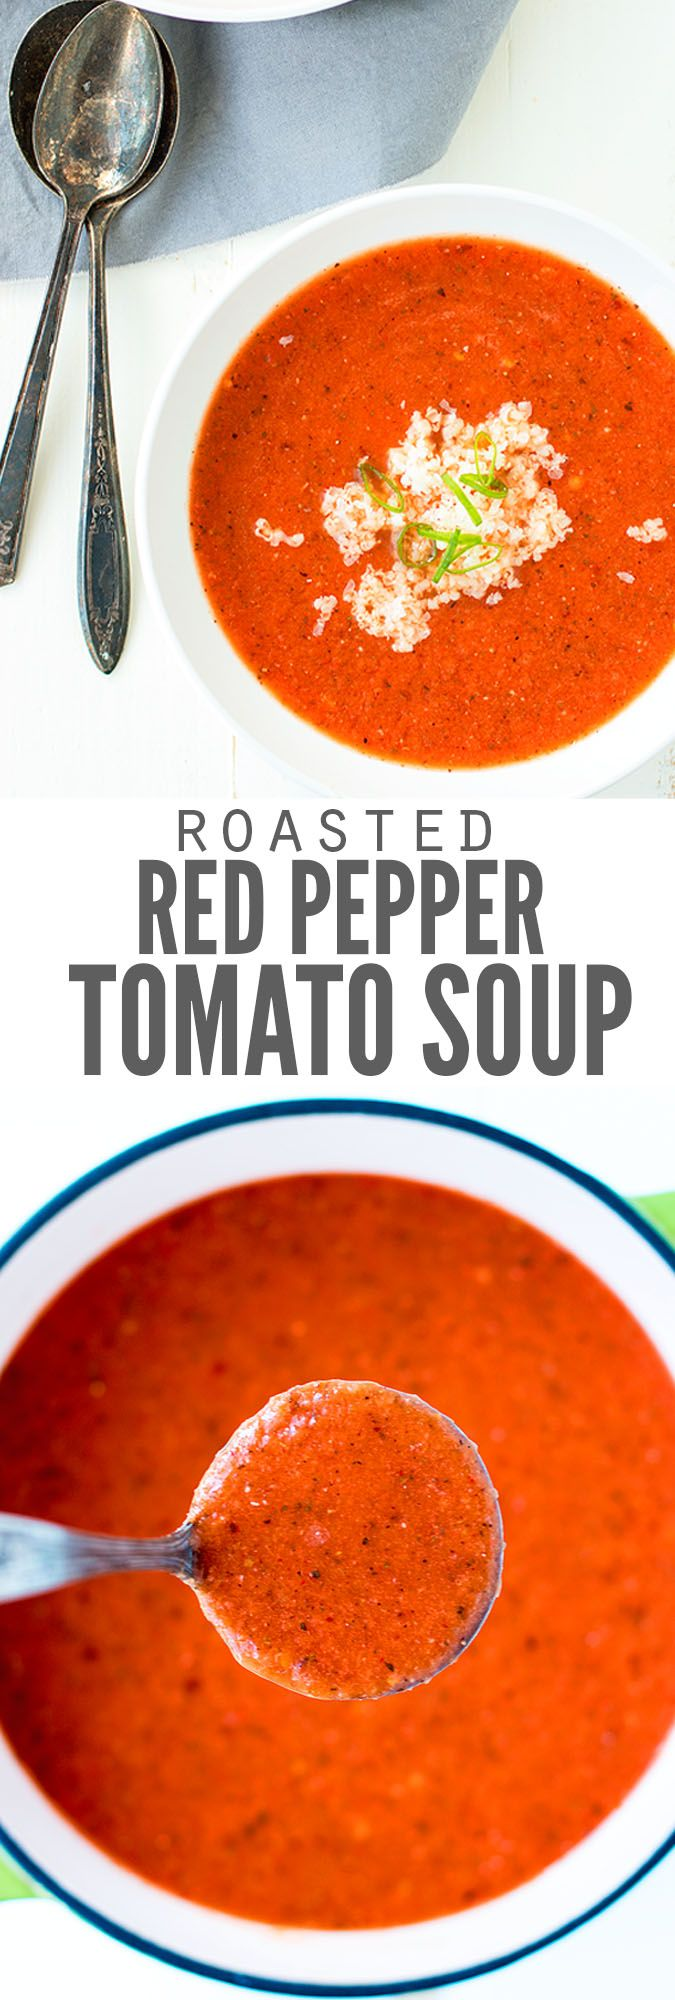 Creamy roasted red pepper and tomato soup recipe from scratch is better than Trader Joe's, Pacific and any tomato bisque. Ready in minutes & kids love it! :: DontWastetheCrumbs.com